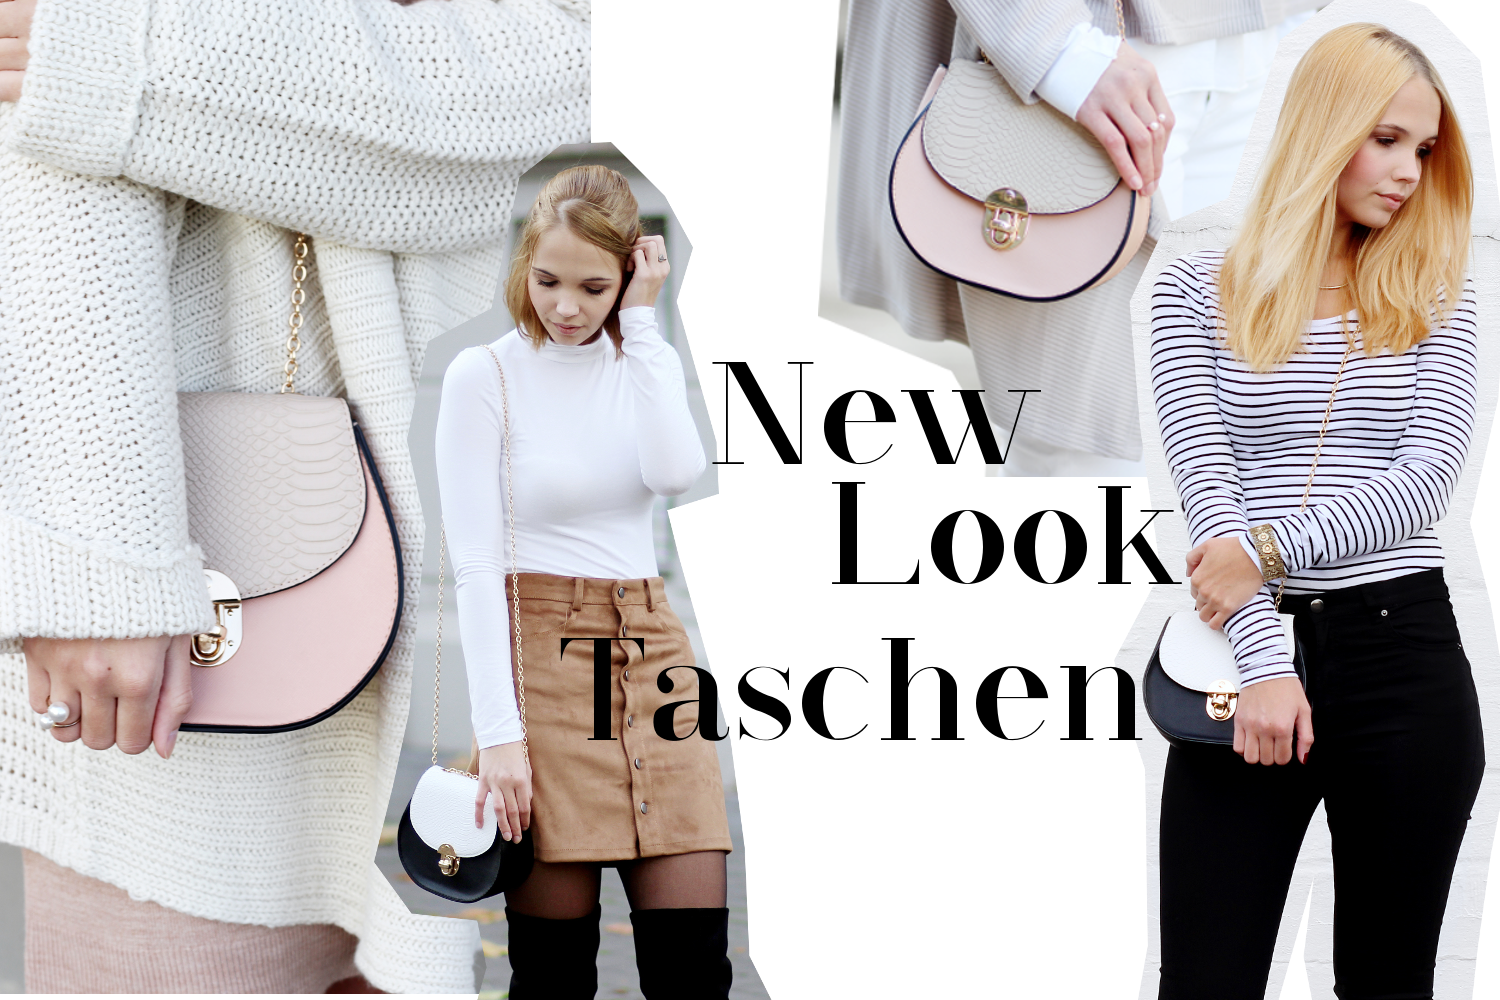 bezaubernde nana, bezauberndenana.de, fashionblog, modeblog, germany, deutschland, mode favoriten 2015, trends 2015, fashion, mode, new look taschen